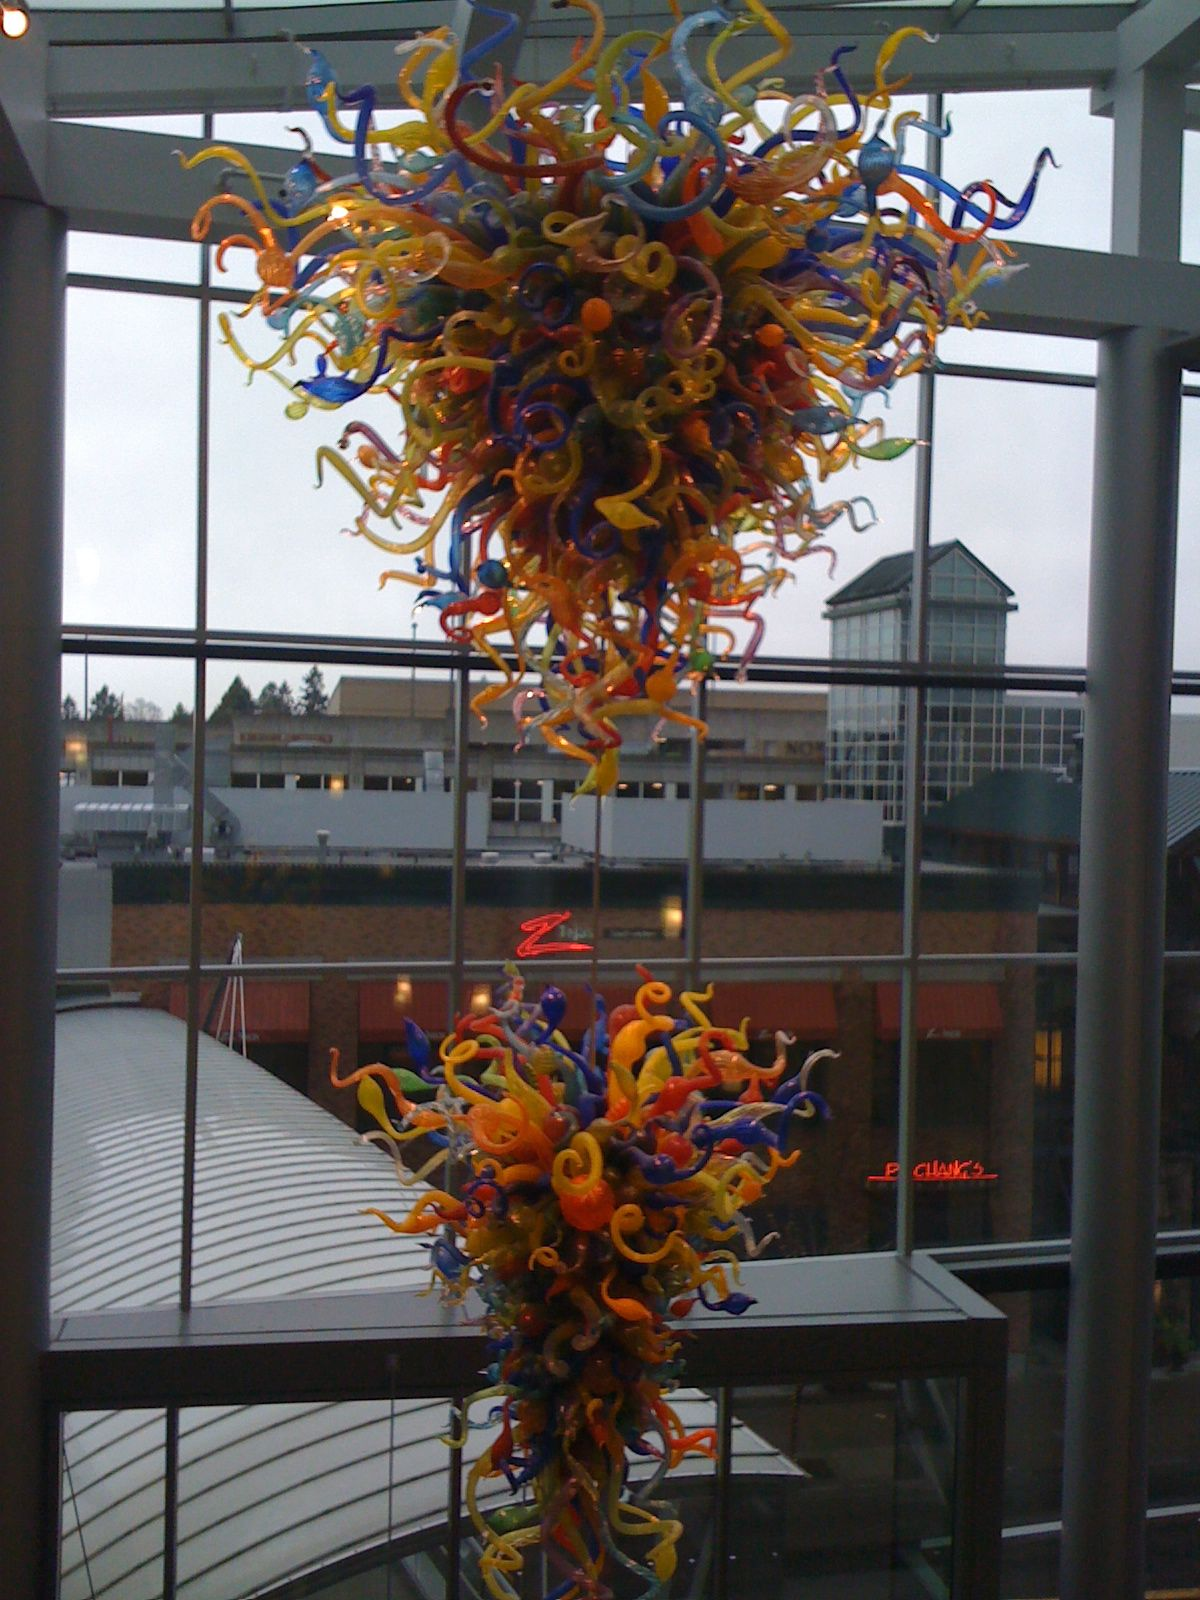 COMMENT BELOW: if you have seen Dale Chihuly Glass #art in Bellevue, Washington, by The Container Store